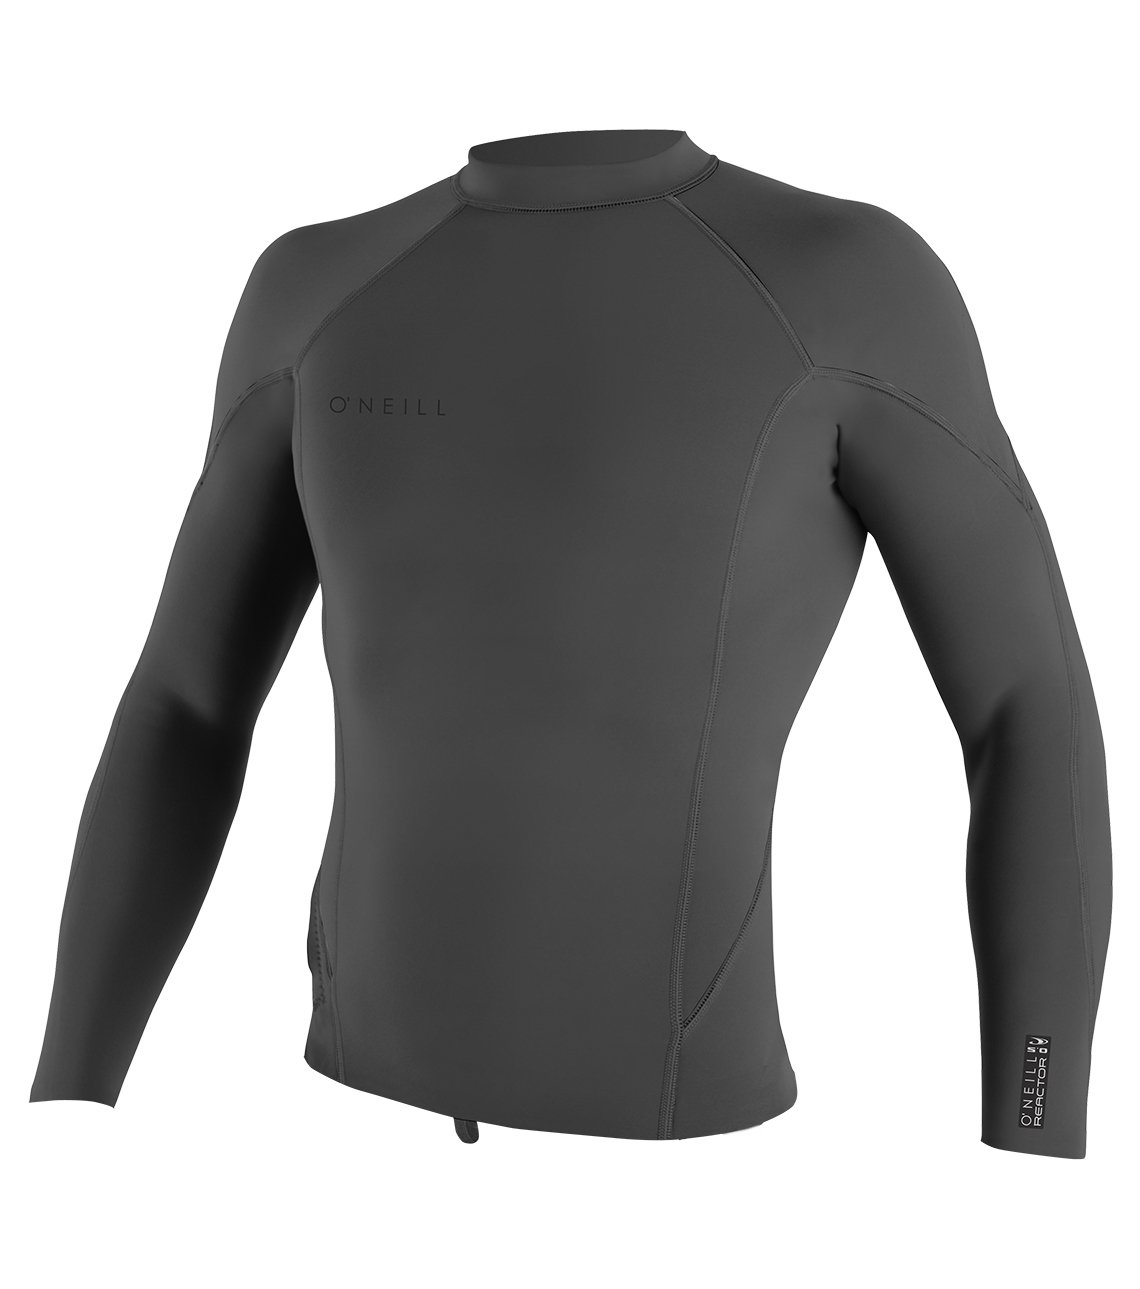 O'Neill Men's Reactor-2 1.5mm Long Sleeve Top, Graphite, Small